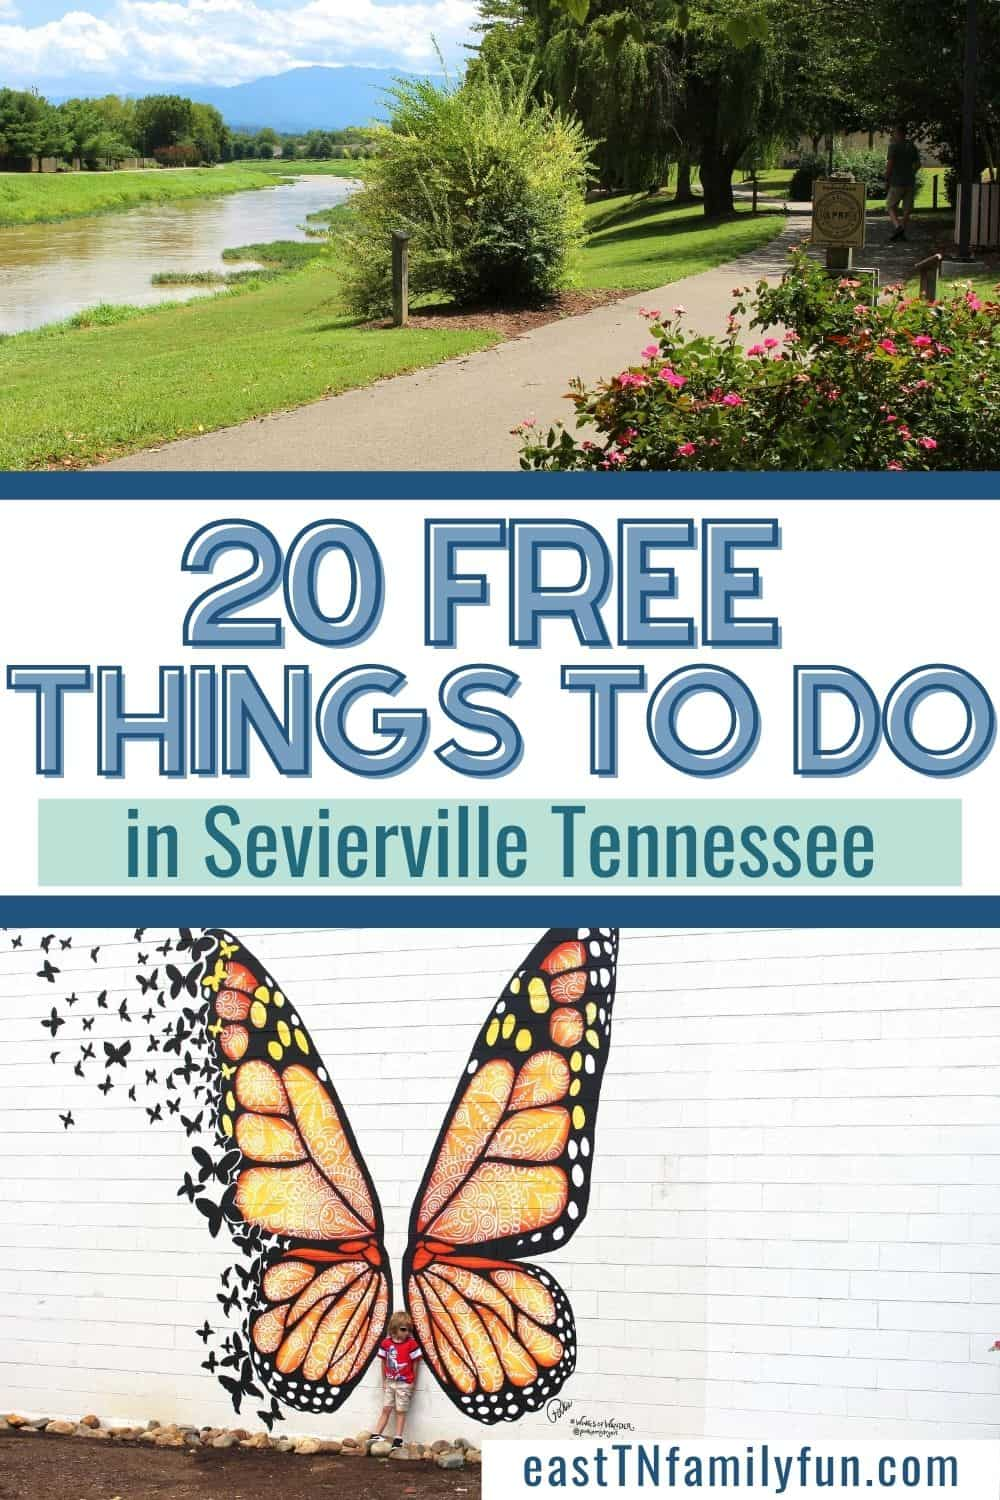 20 FREE Things to Do in Sevierville TN